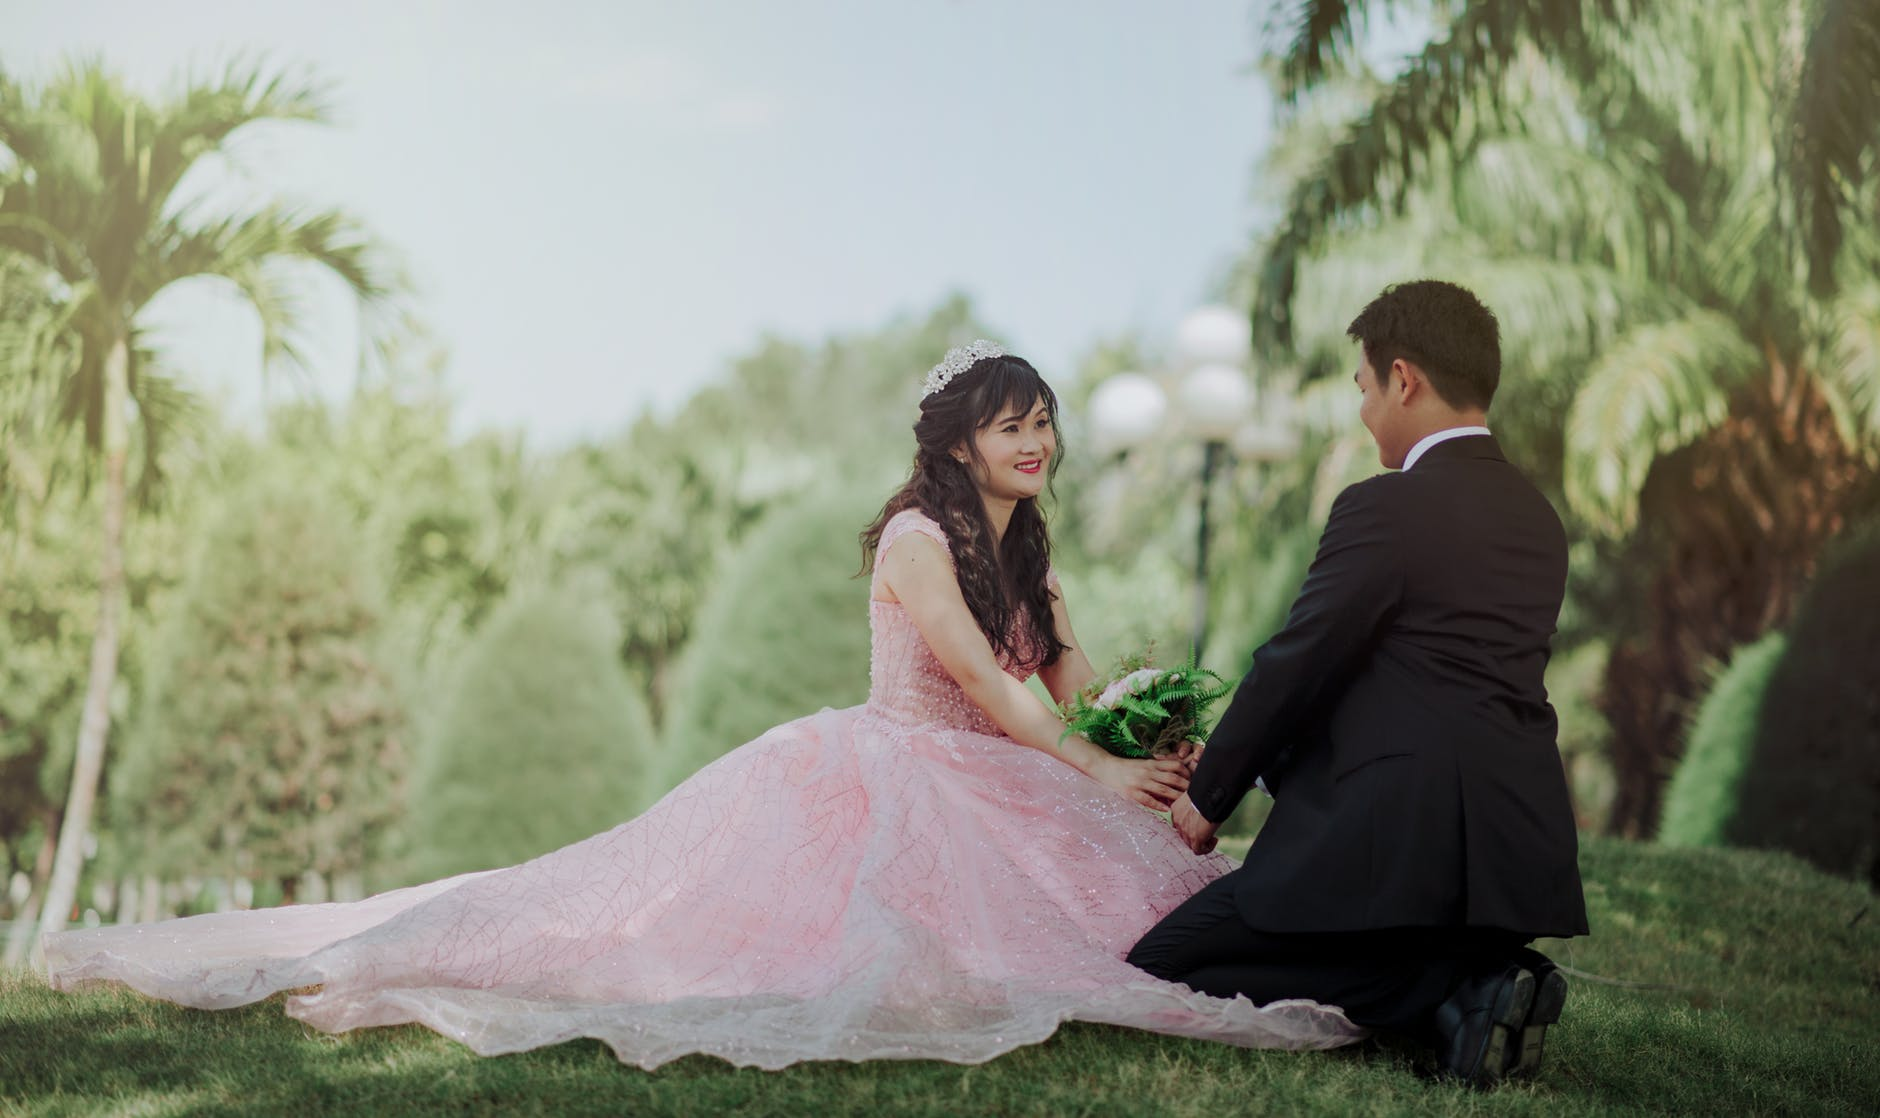 A Houston Wedding Photographer Covers Different Poses For Couples together